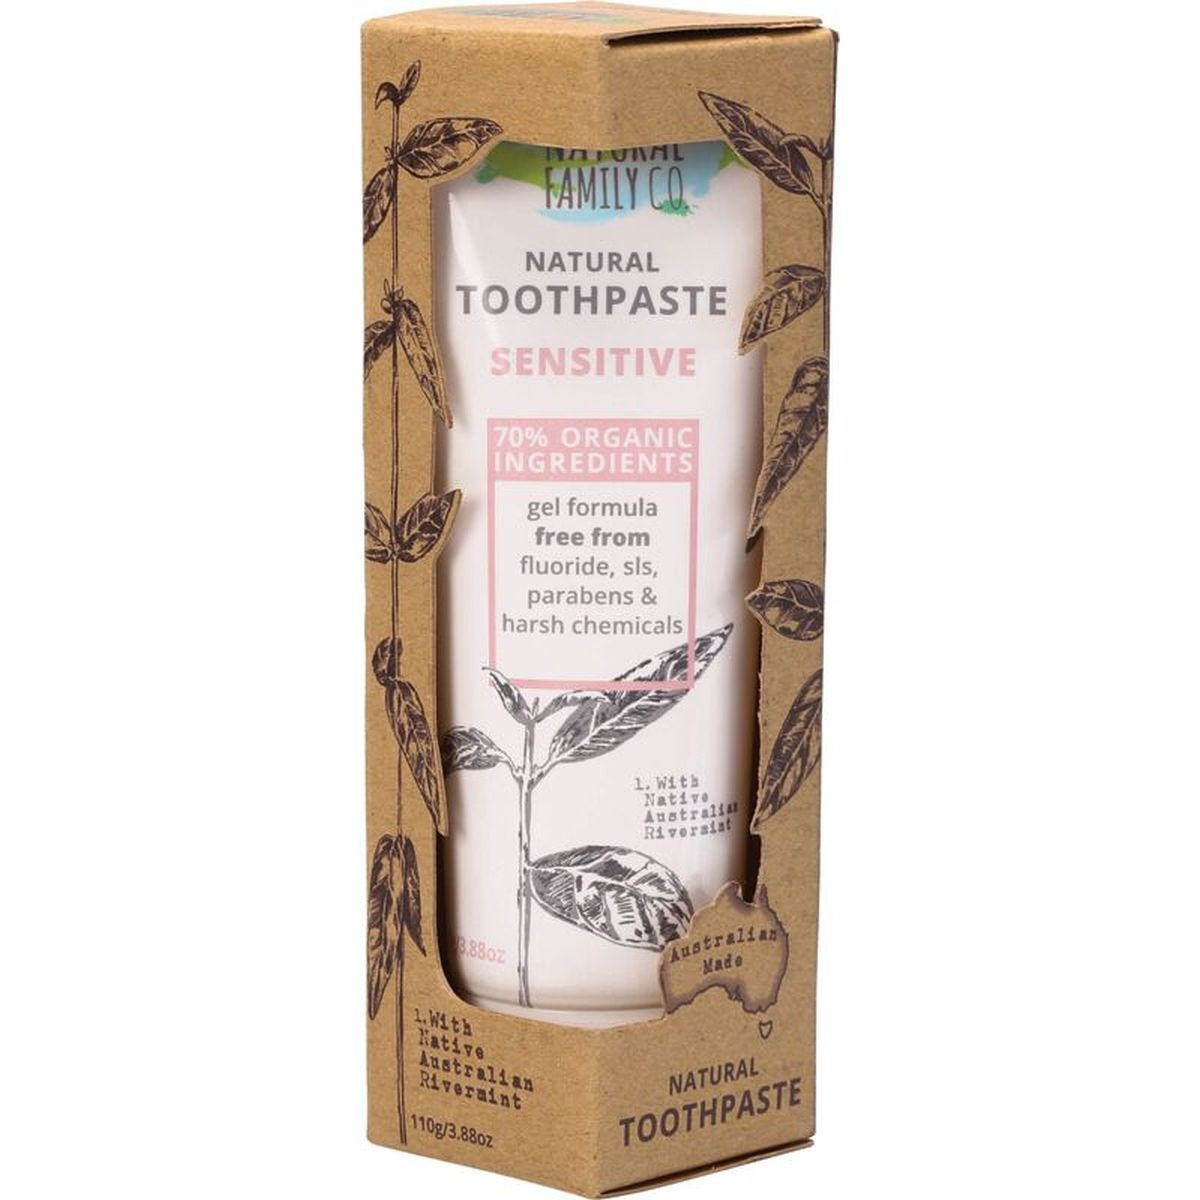 The Natural Family Co. Sensitive Toothpaste